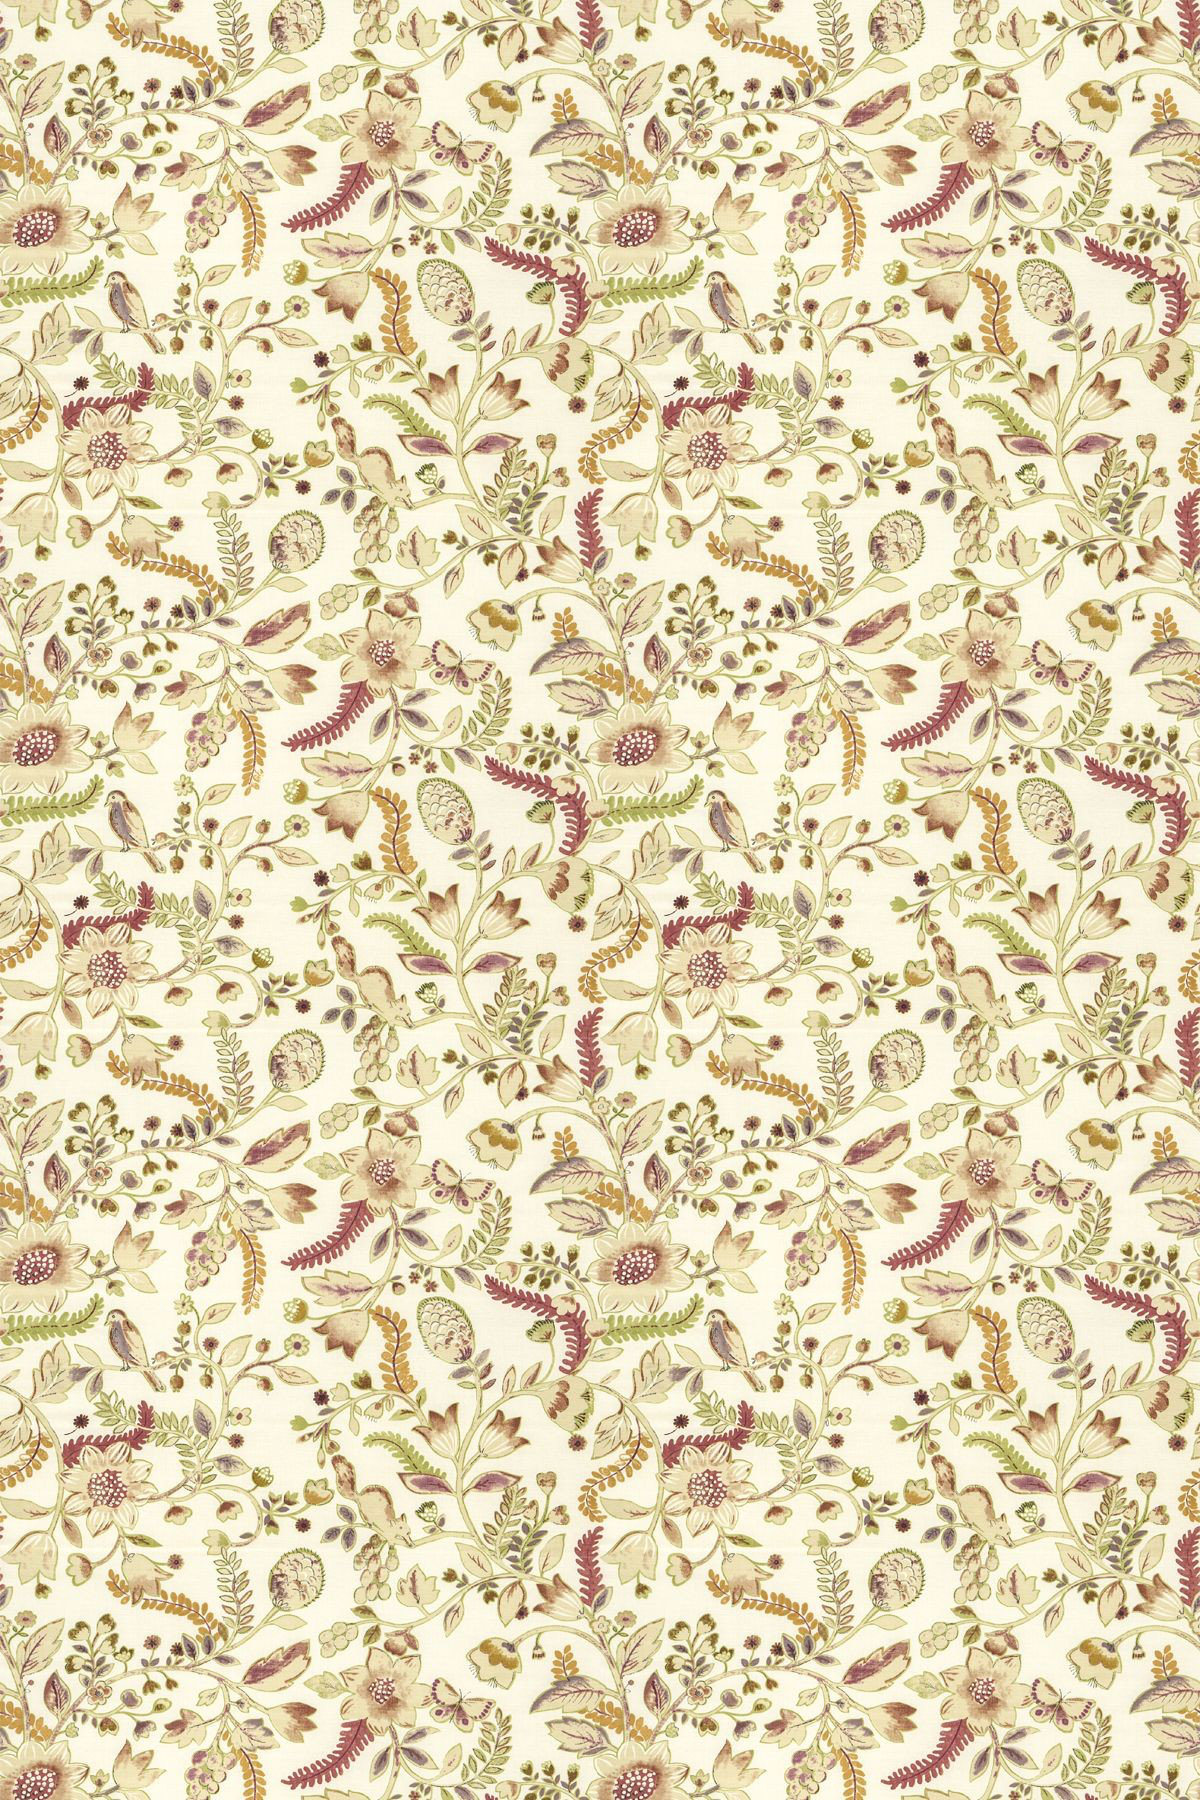 Image of Blendworth Fabric Daydreamer, Daydream/002